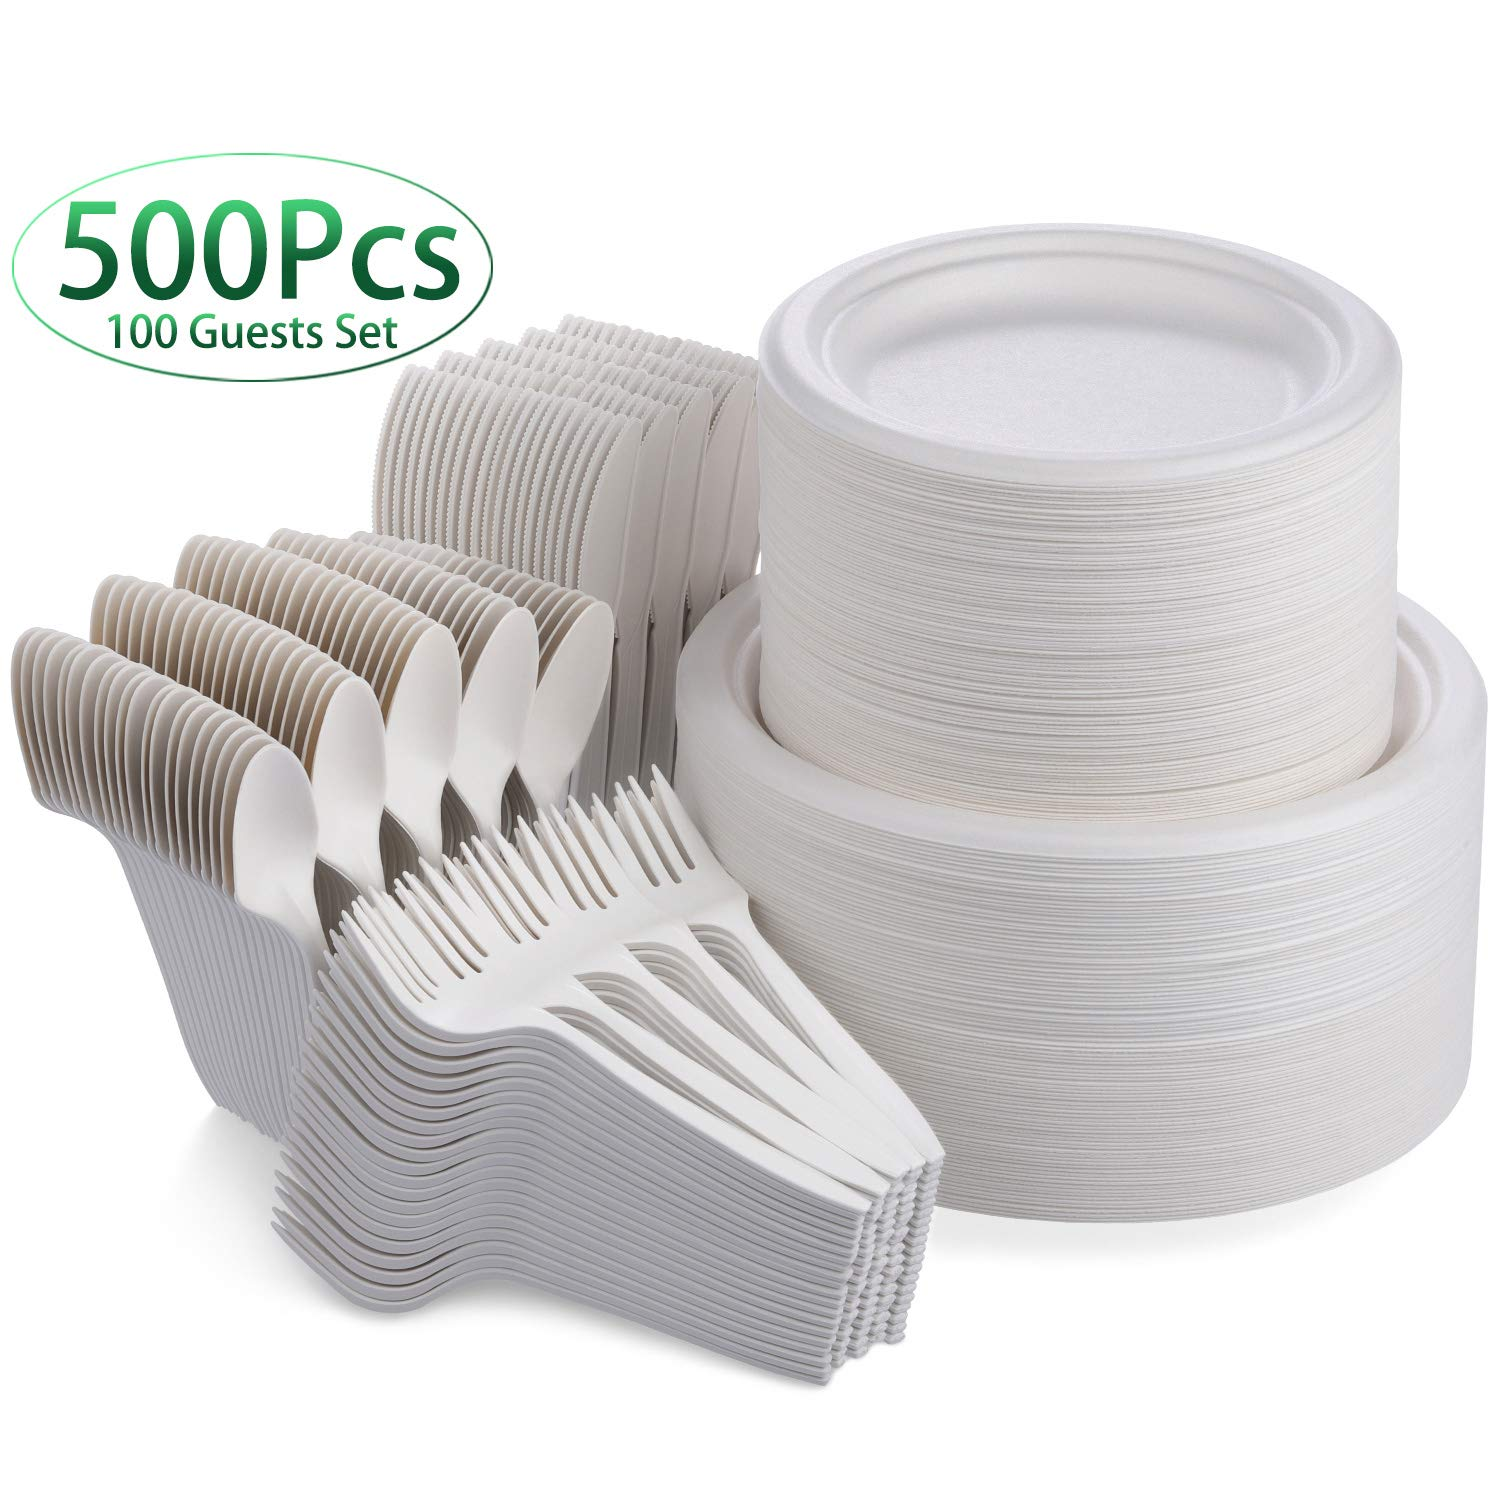 Fuyit 500Pcs Disposable Dinnerware Set for 100 Guests, Compostable Sugarcane Cutlery Eco-Friendly Tableware Includes Biodegradable Paper Plates, Forks, Knives and Spoons for Party, BBQ, Picnic (White) by Fuyit